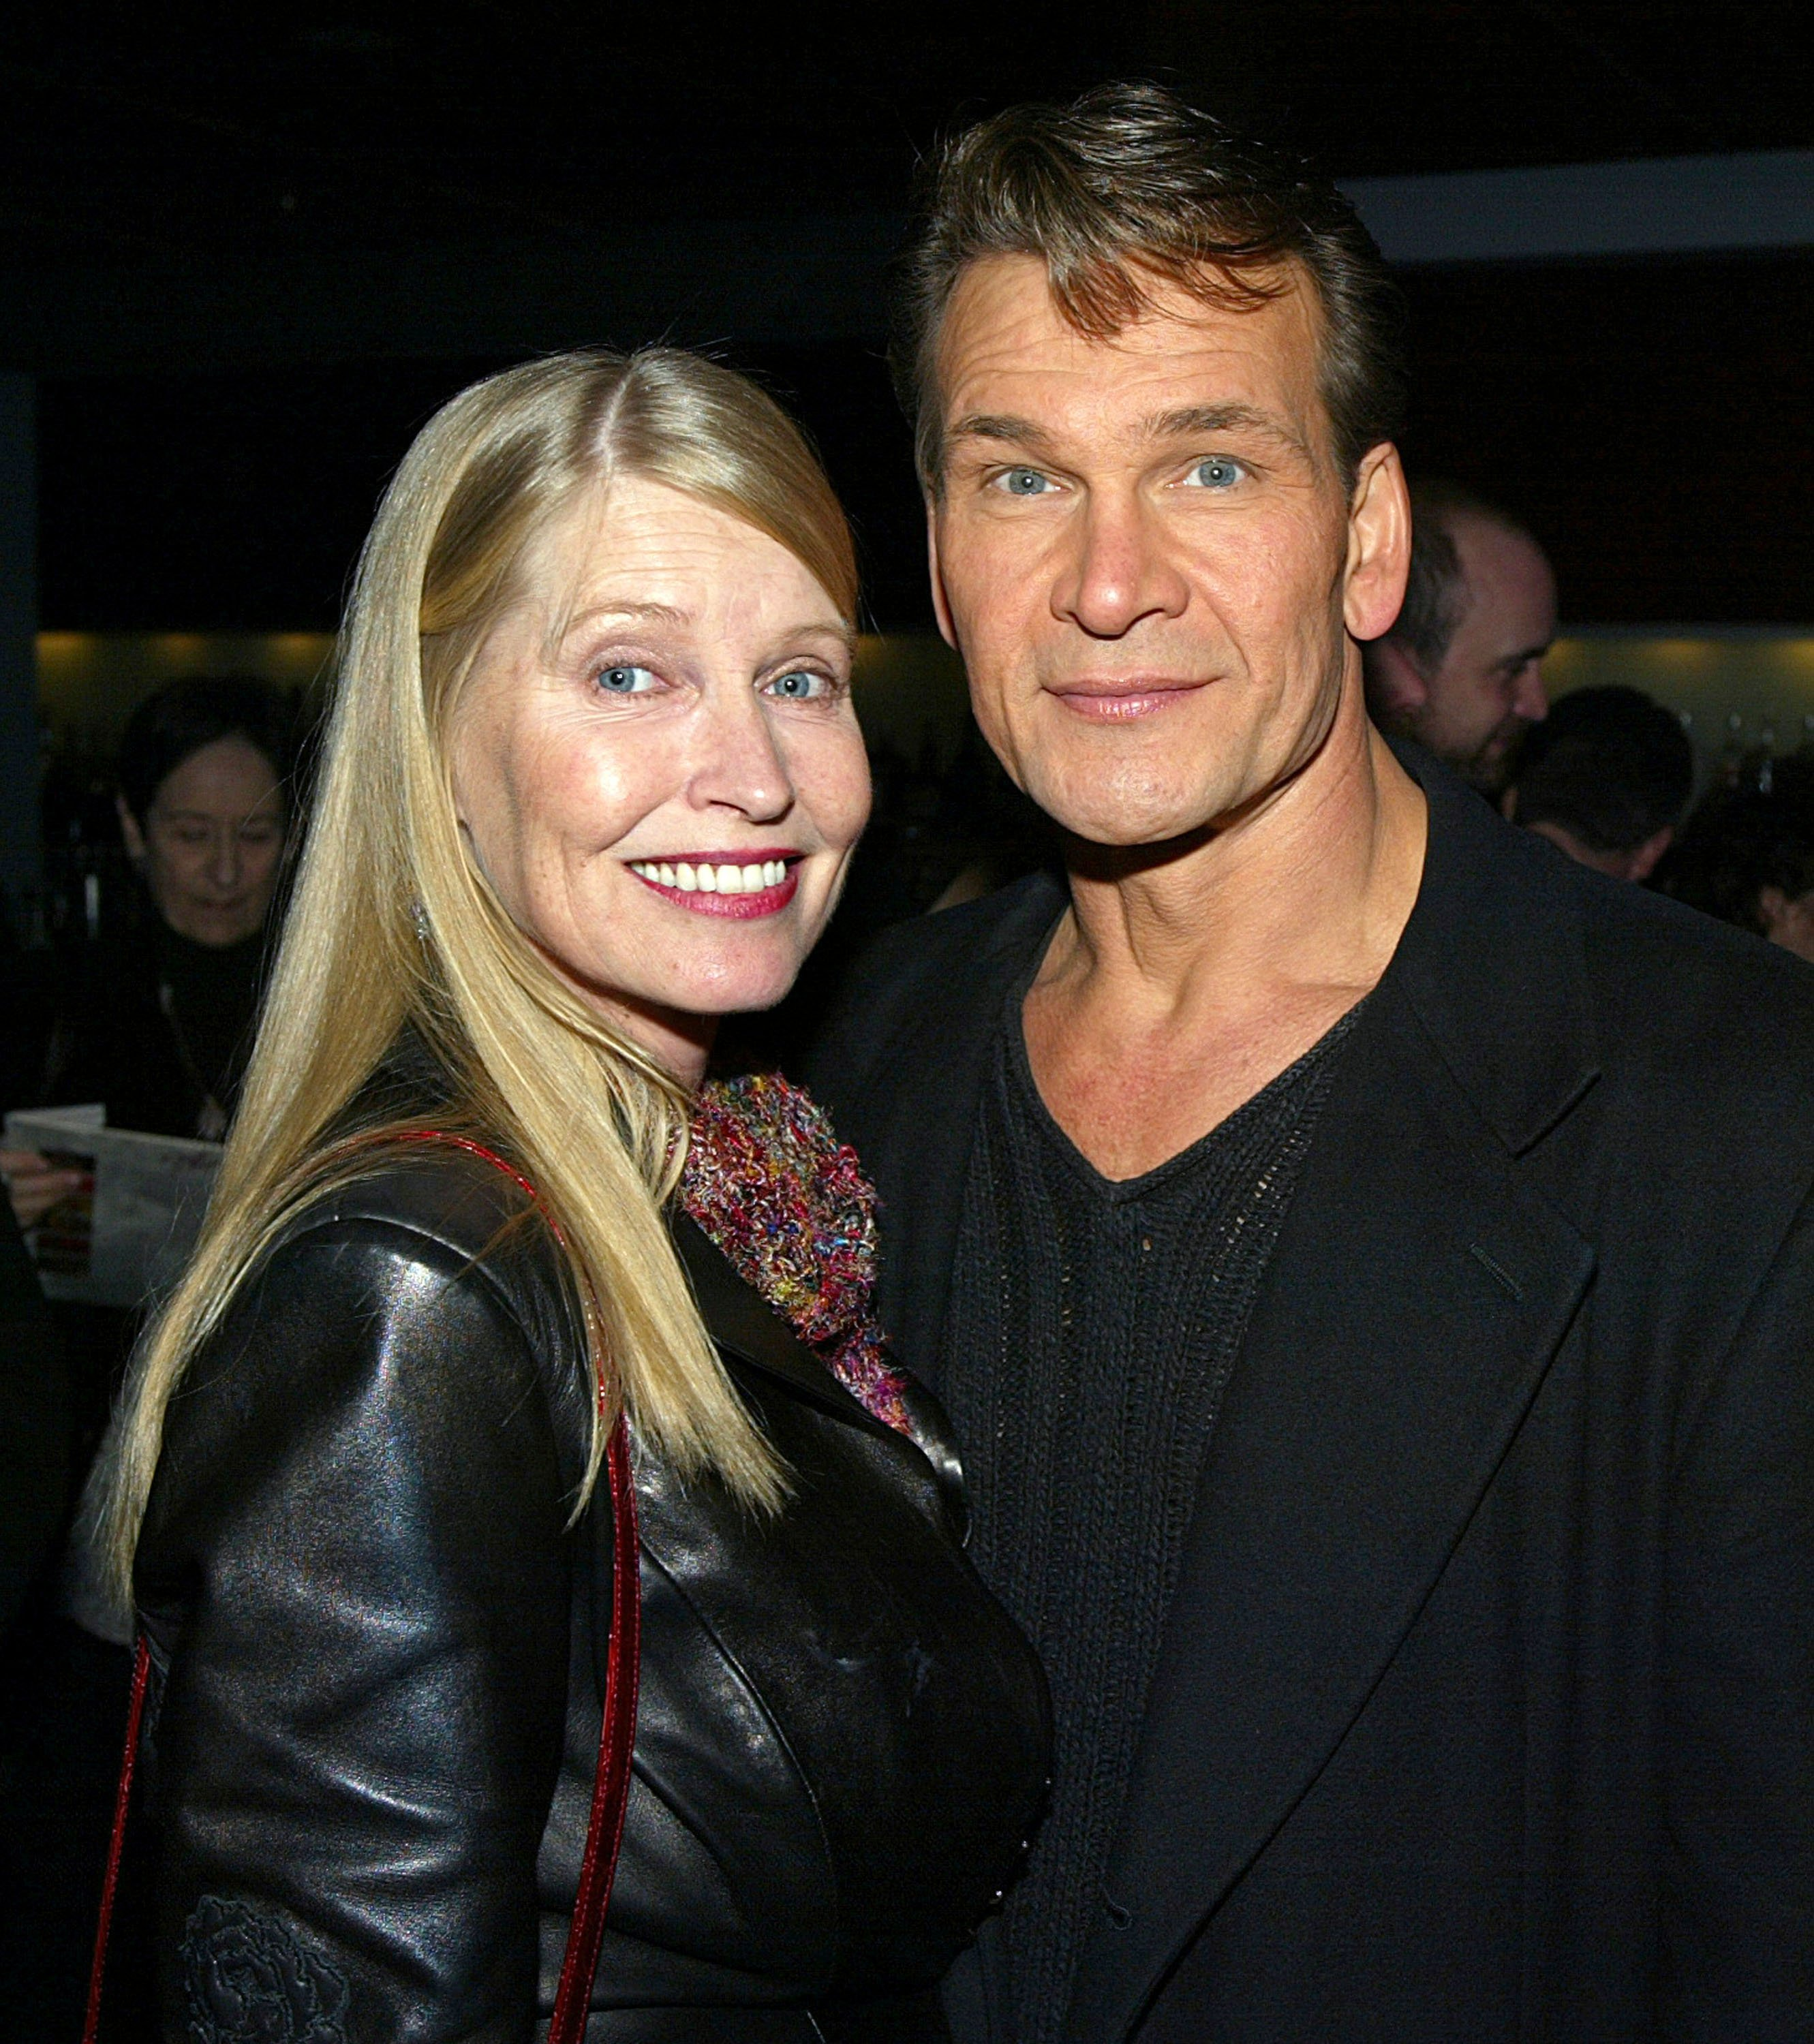 Patrick und Liza Swayze | Quelle: Getty Images